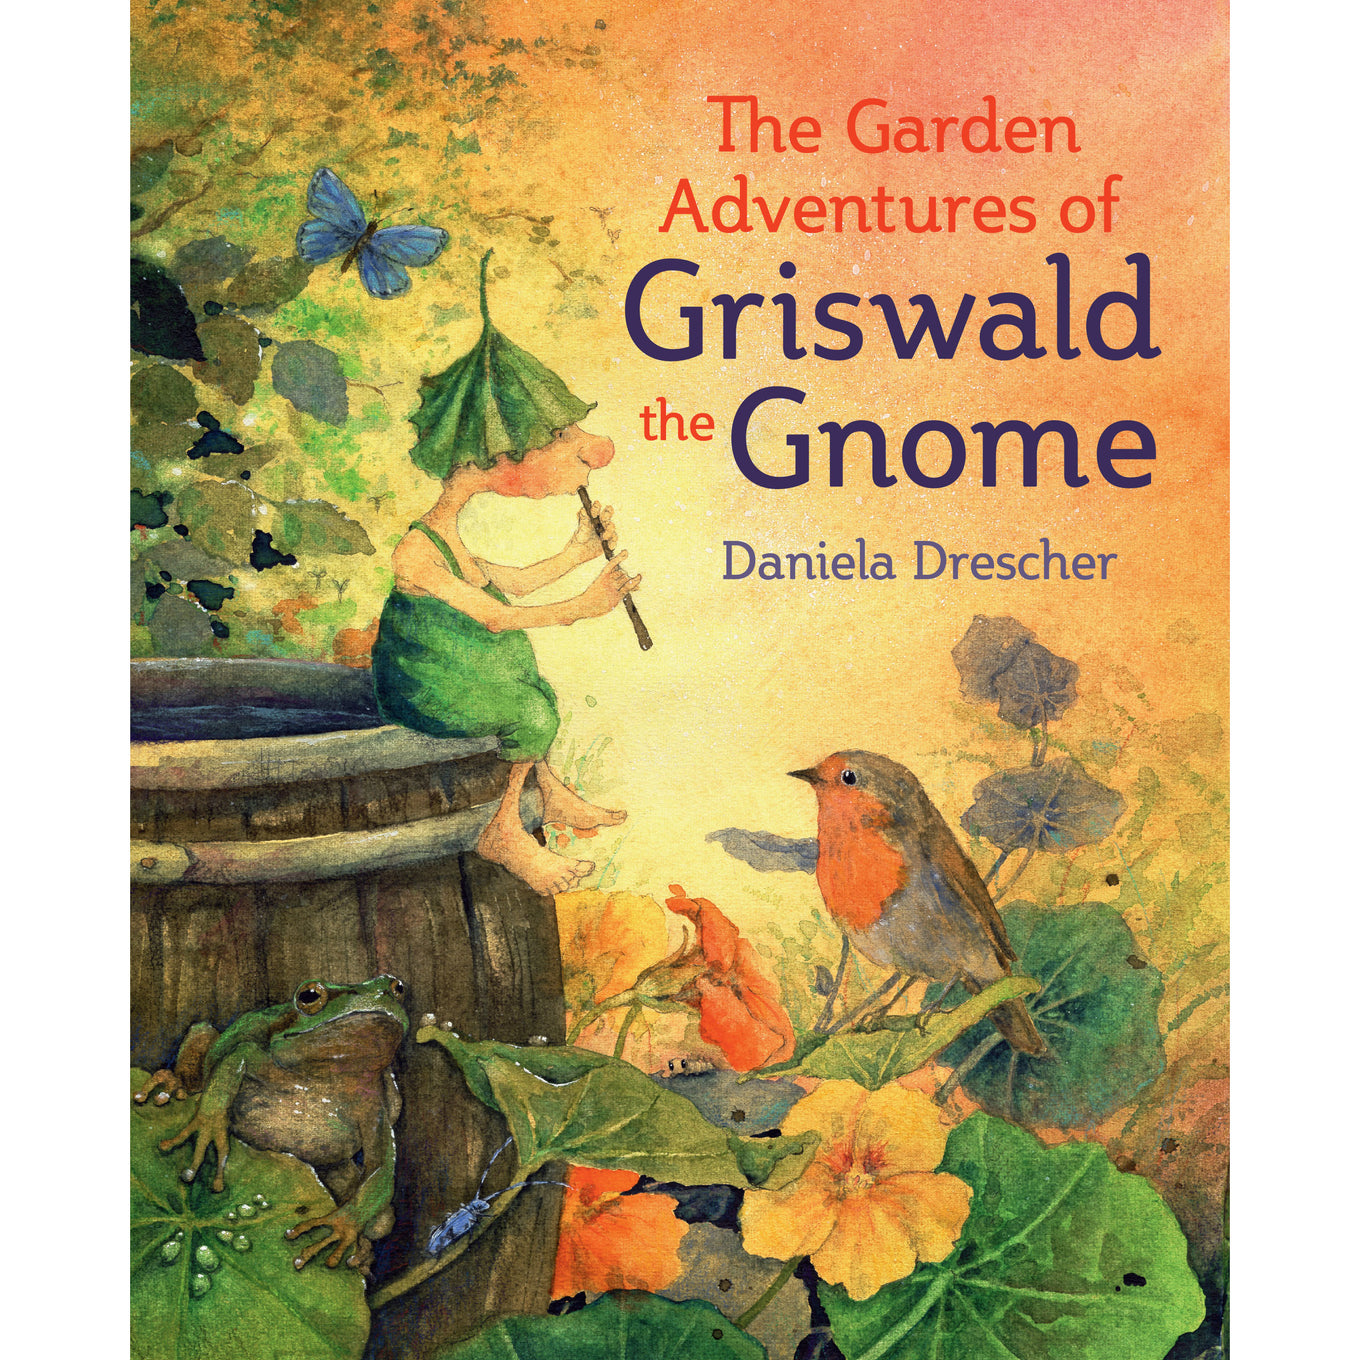 The Garden Adventures of Griswald the Gnome